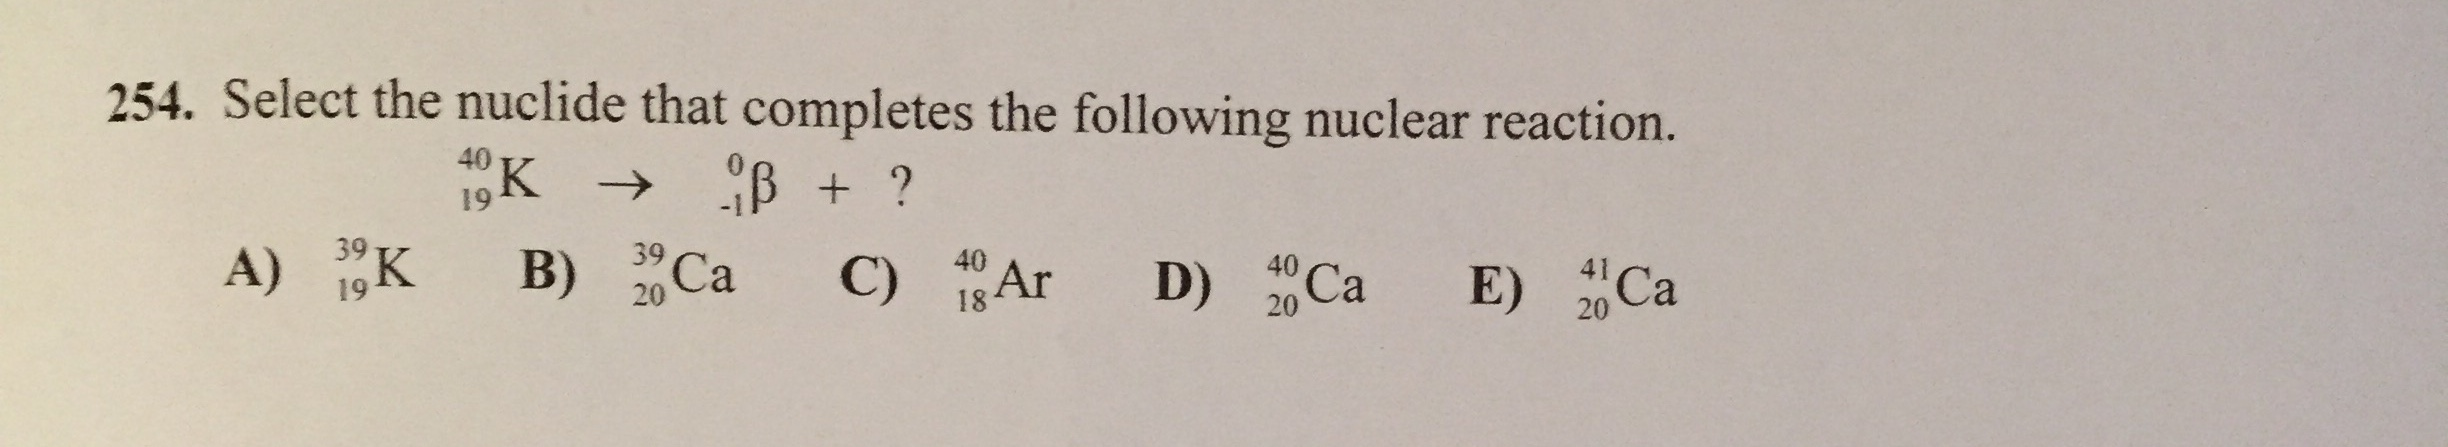 254. Select the nuclide that completes the following nuclear reaction. 40 K 19 41 Ca 39 Ca 20 40 D) 2 Ca 39 A) 1,K 20 18 Ar